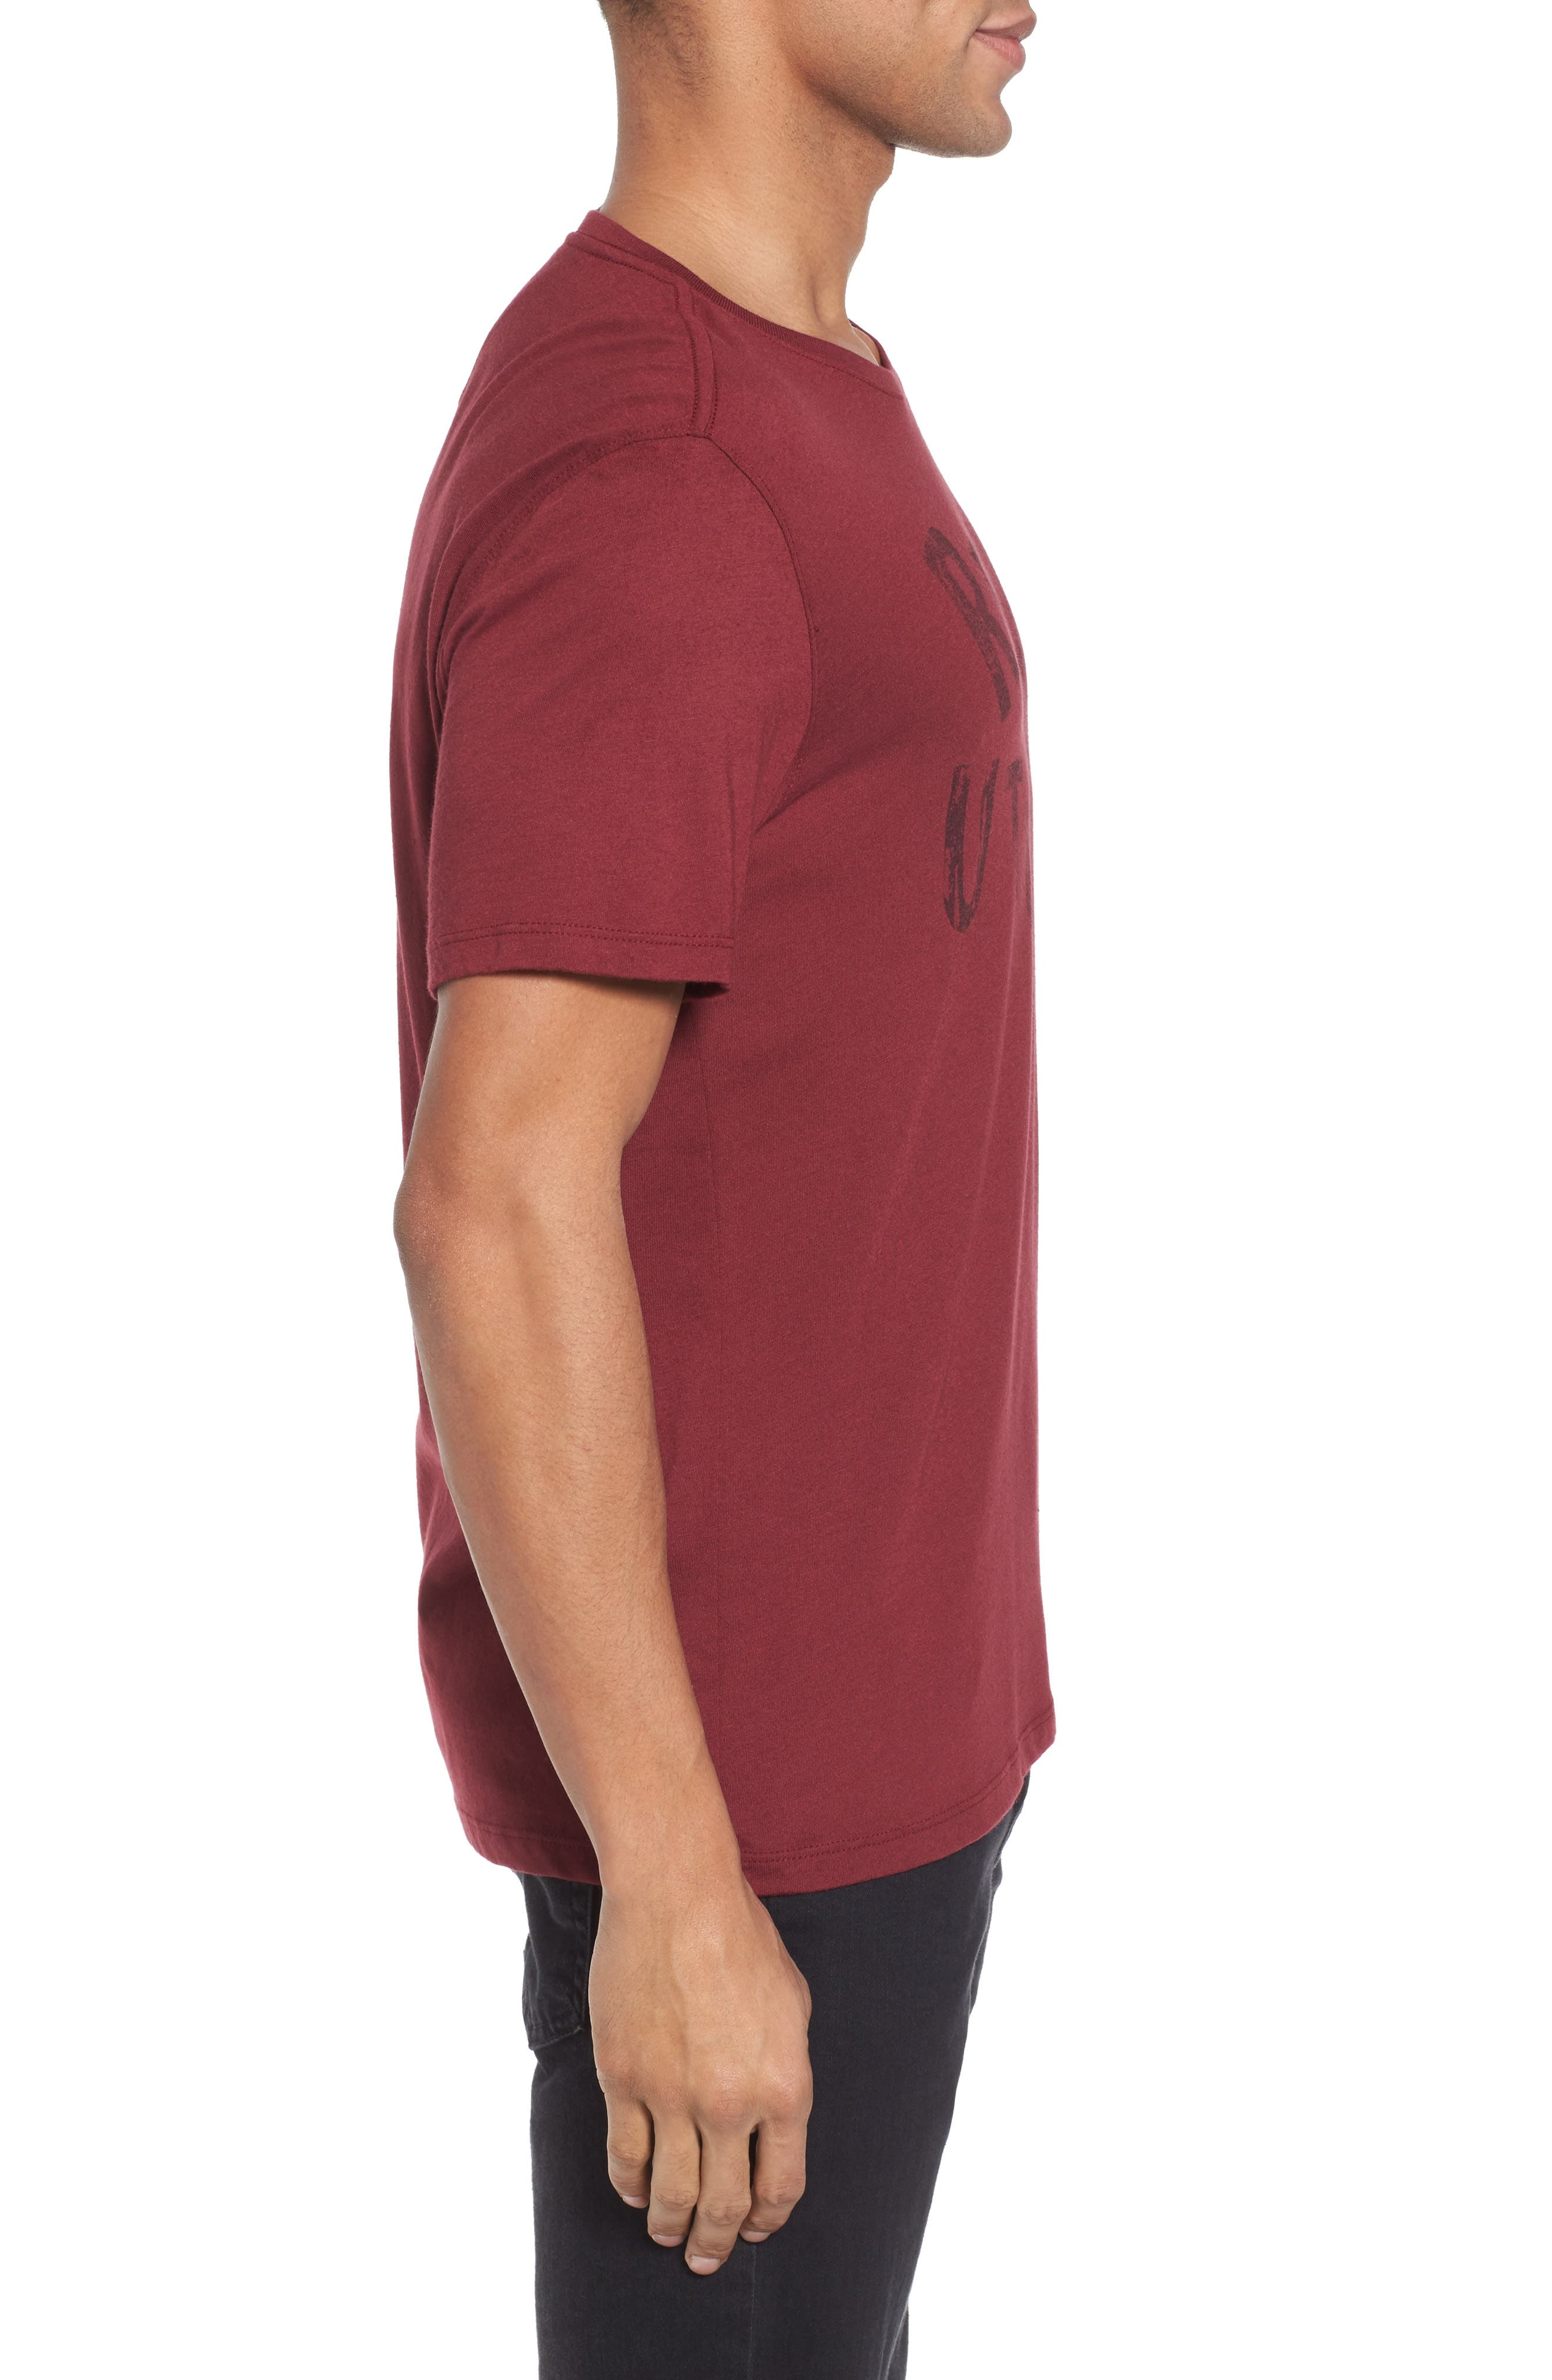 Revolution Graphic T-Shirt,                             Alternate thumbnail 3, color,                             Oxblood